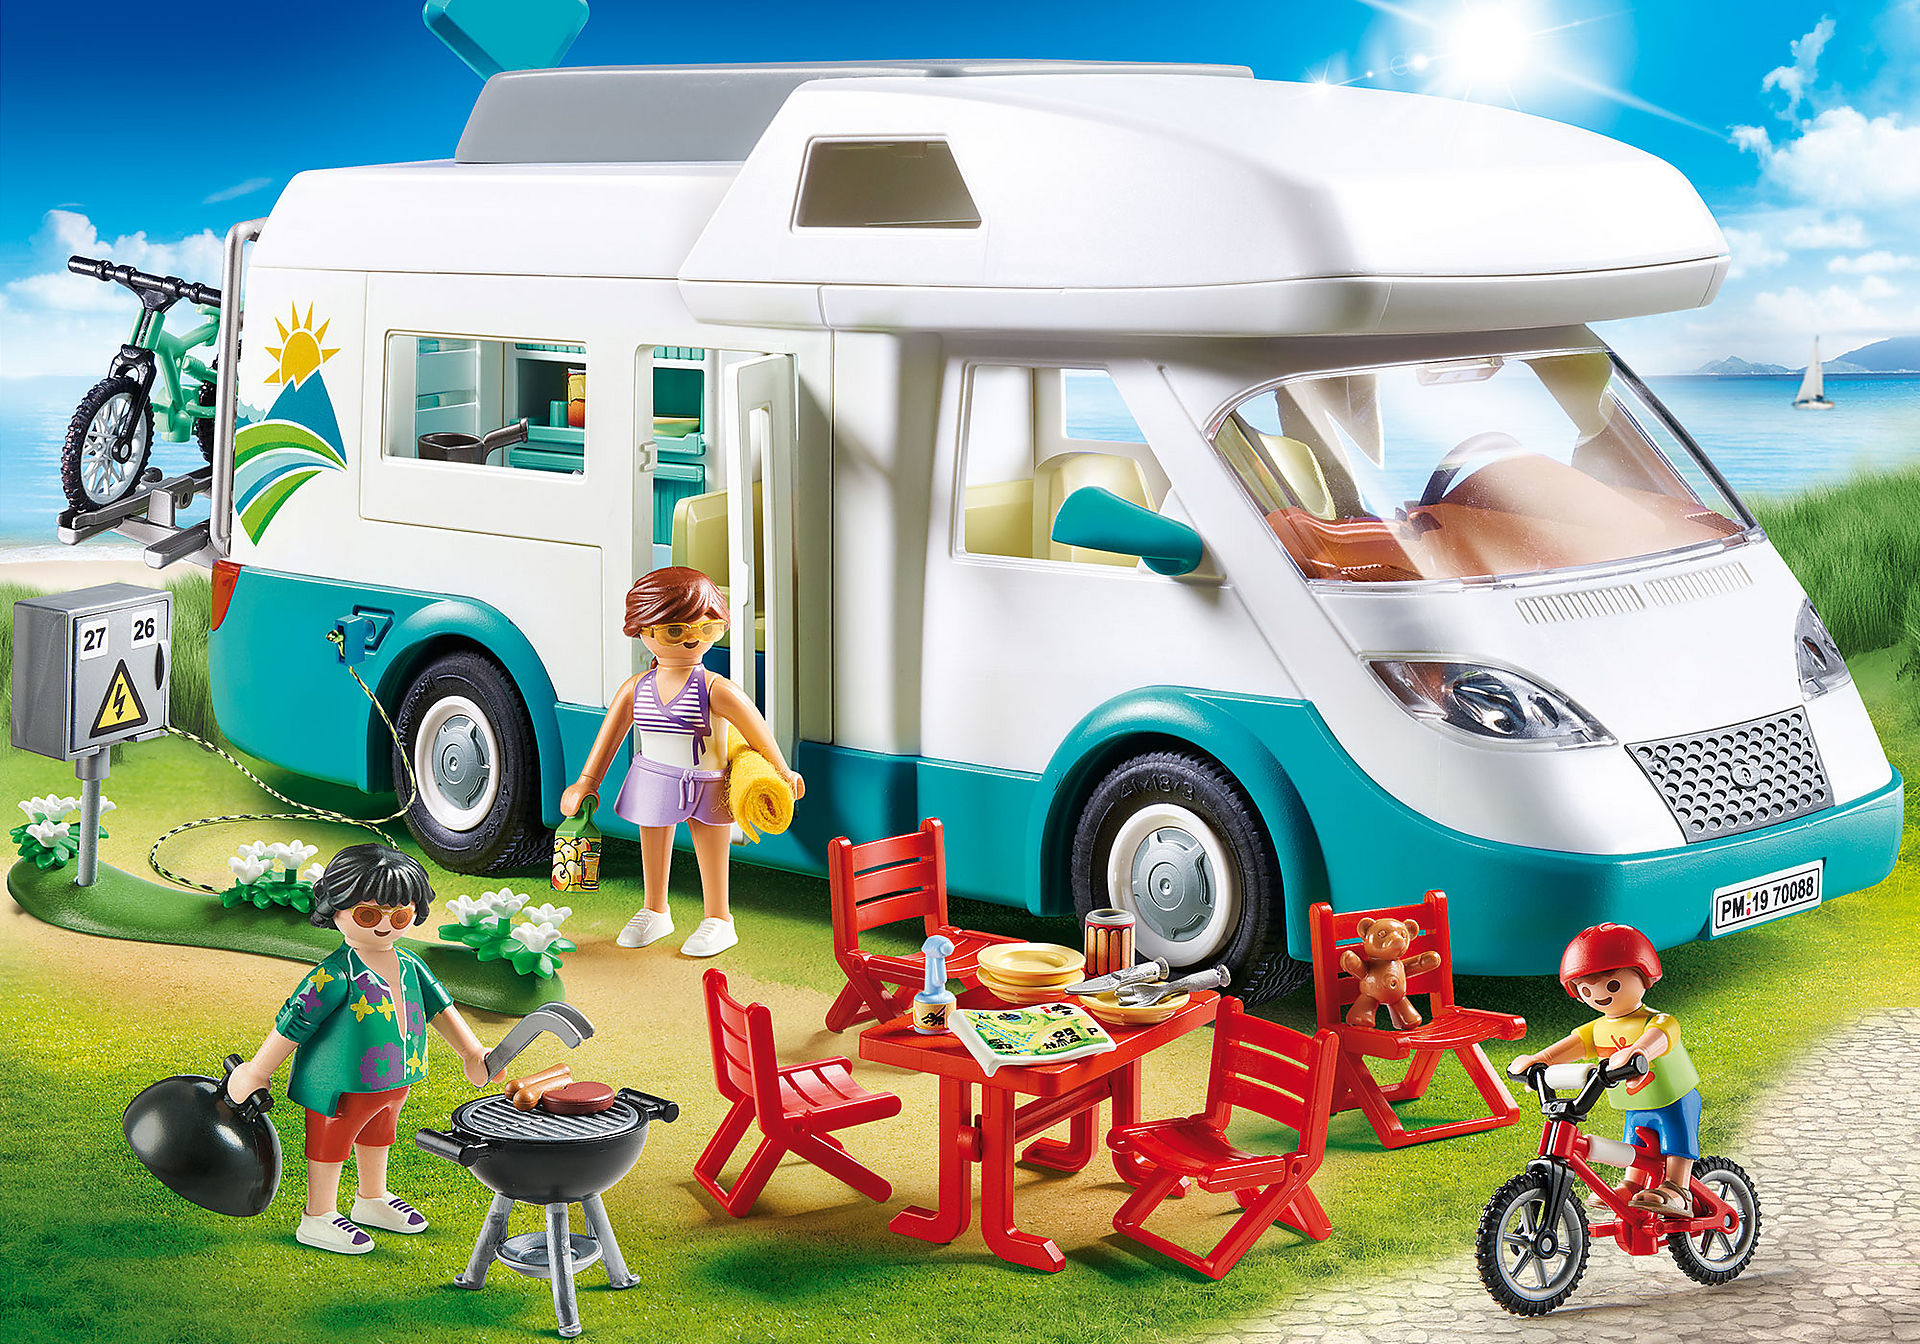 70088 Familien-Wohnmobil zoom image1